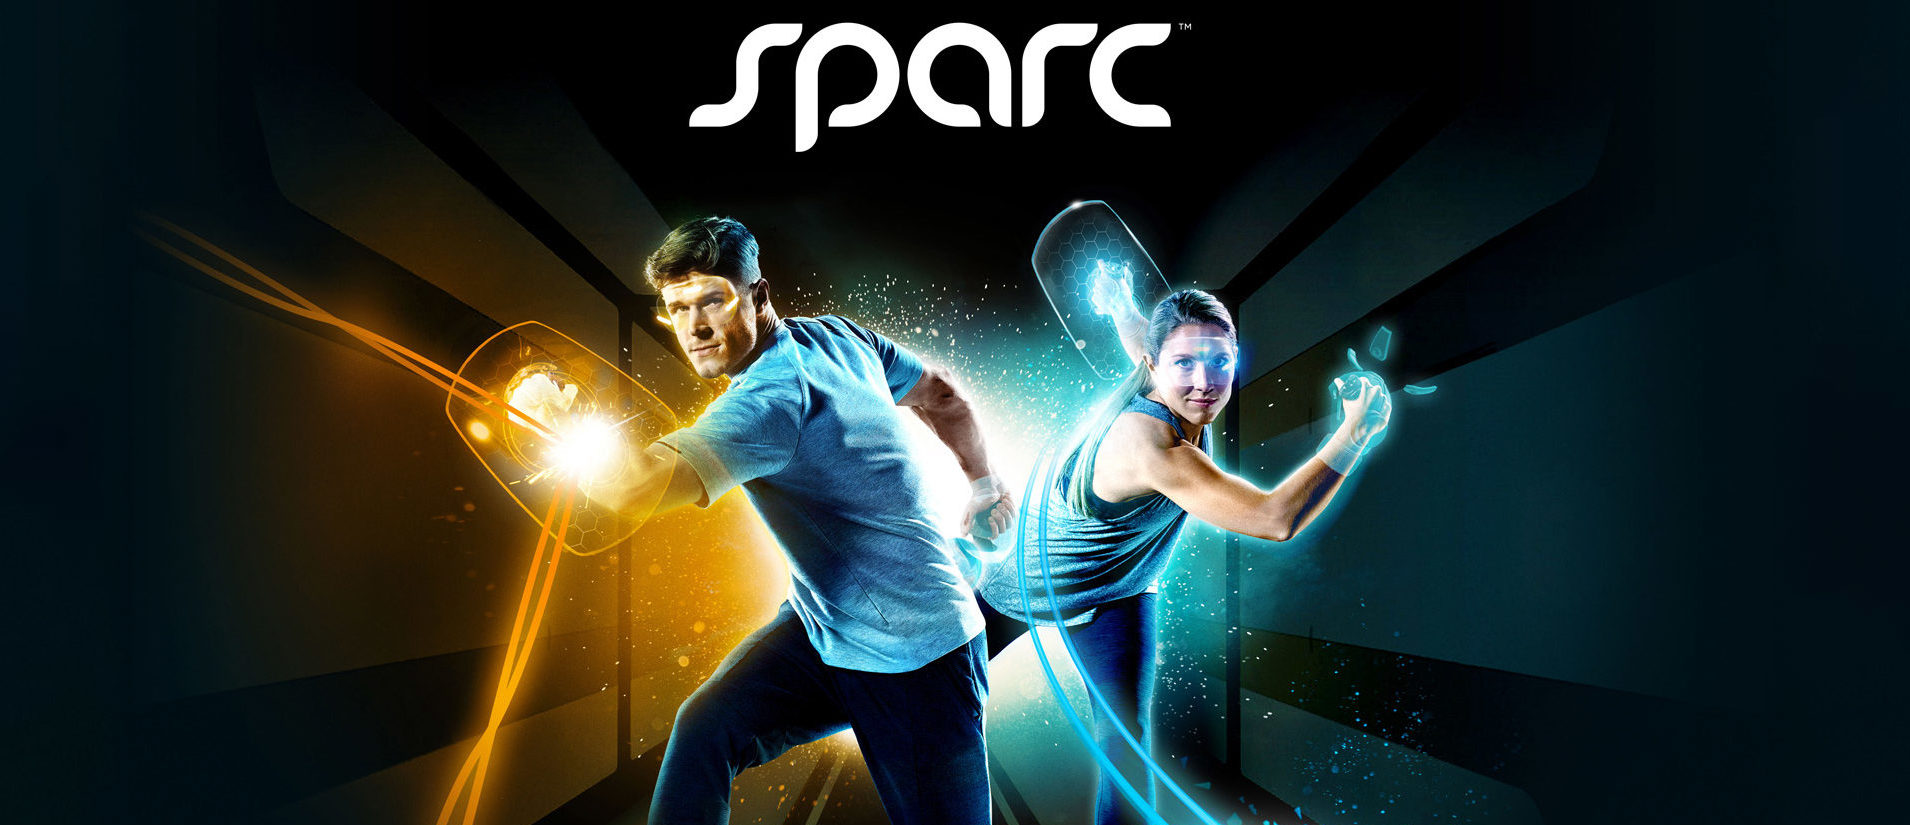 Sparc (PSVR) Review - The Virtual Sport of the Future